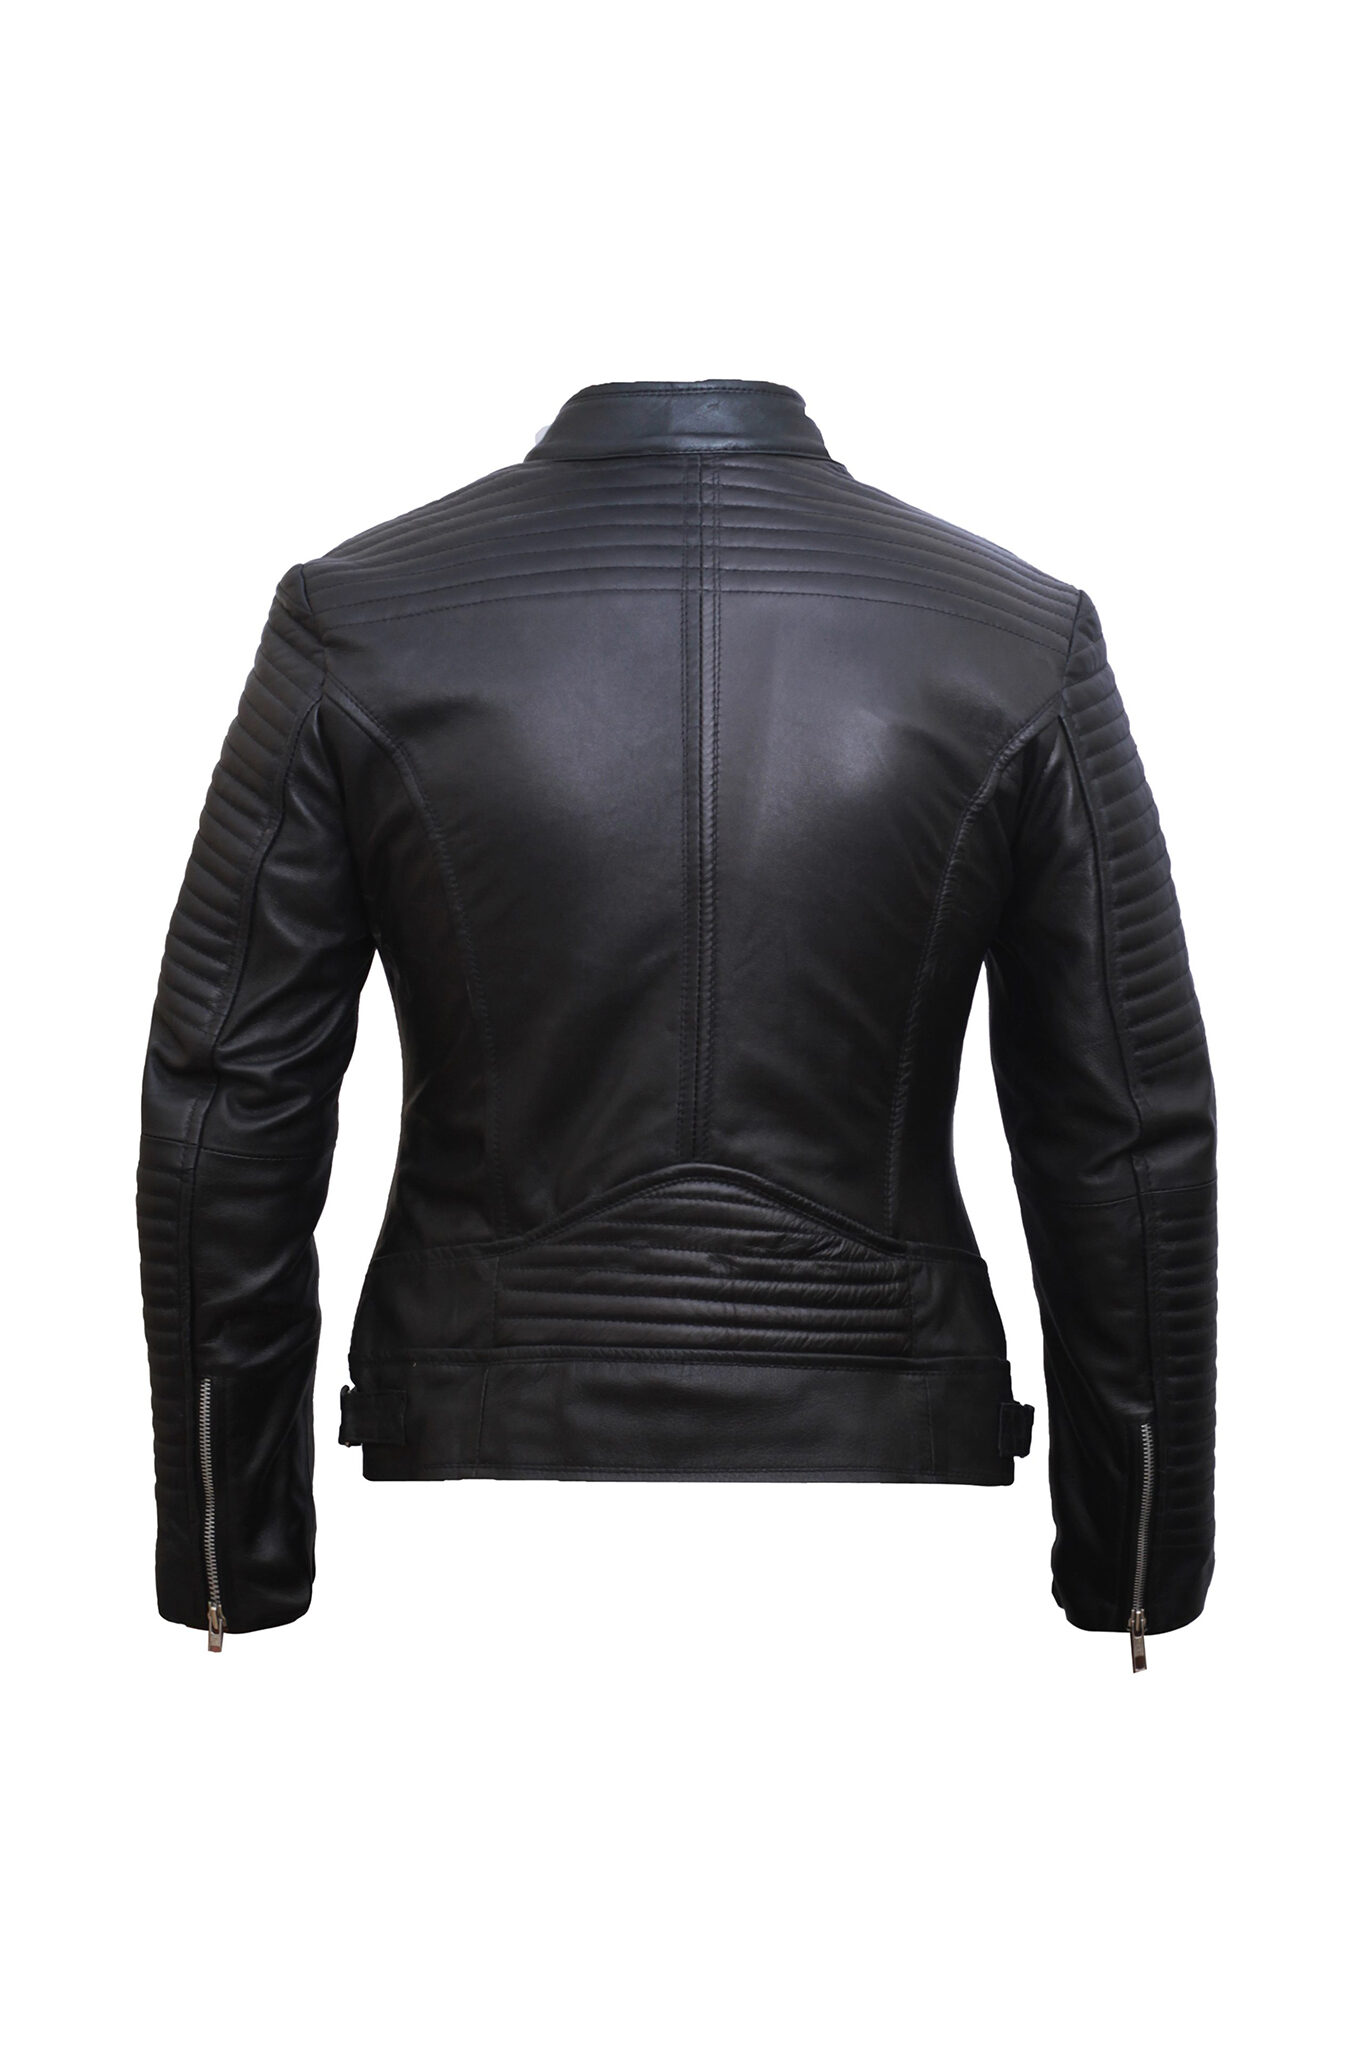 Black Leather Jacket Women – Motorbike Jacket Women – Leather Jackets for Women-3